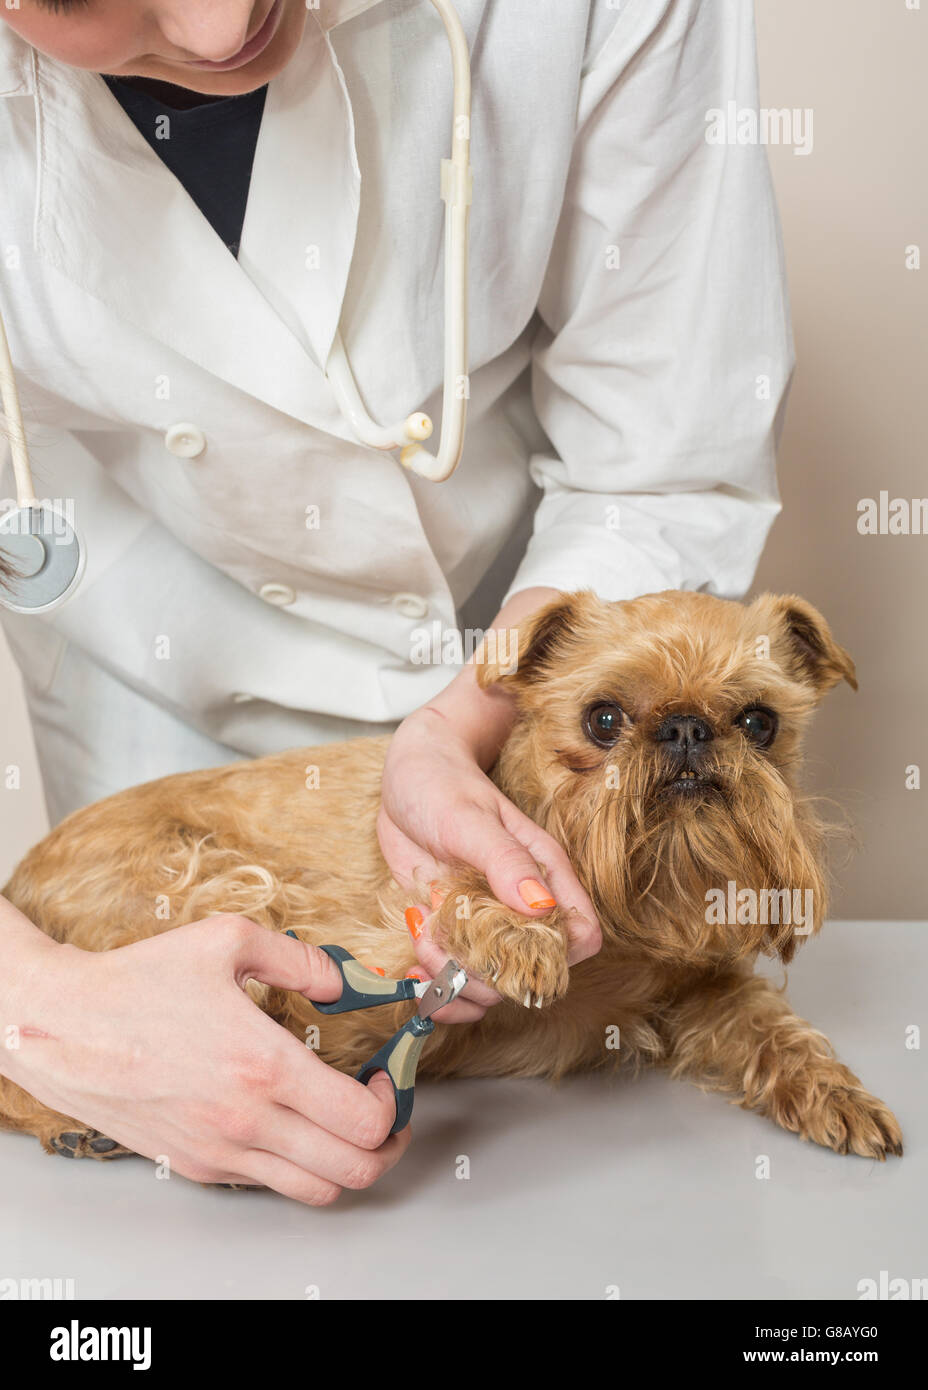 Veterinarian cuts claws to a small dog Griffon - Stock Image